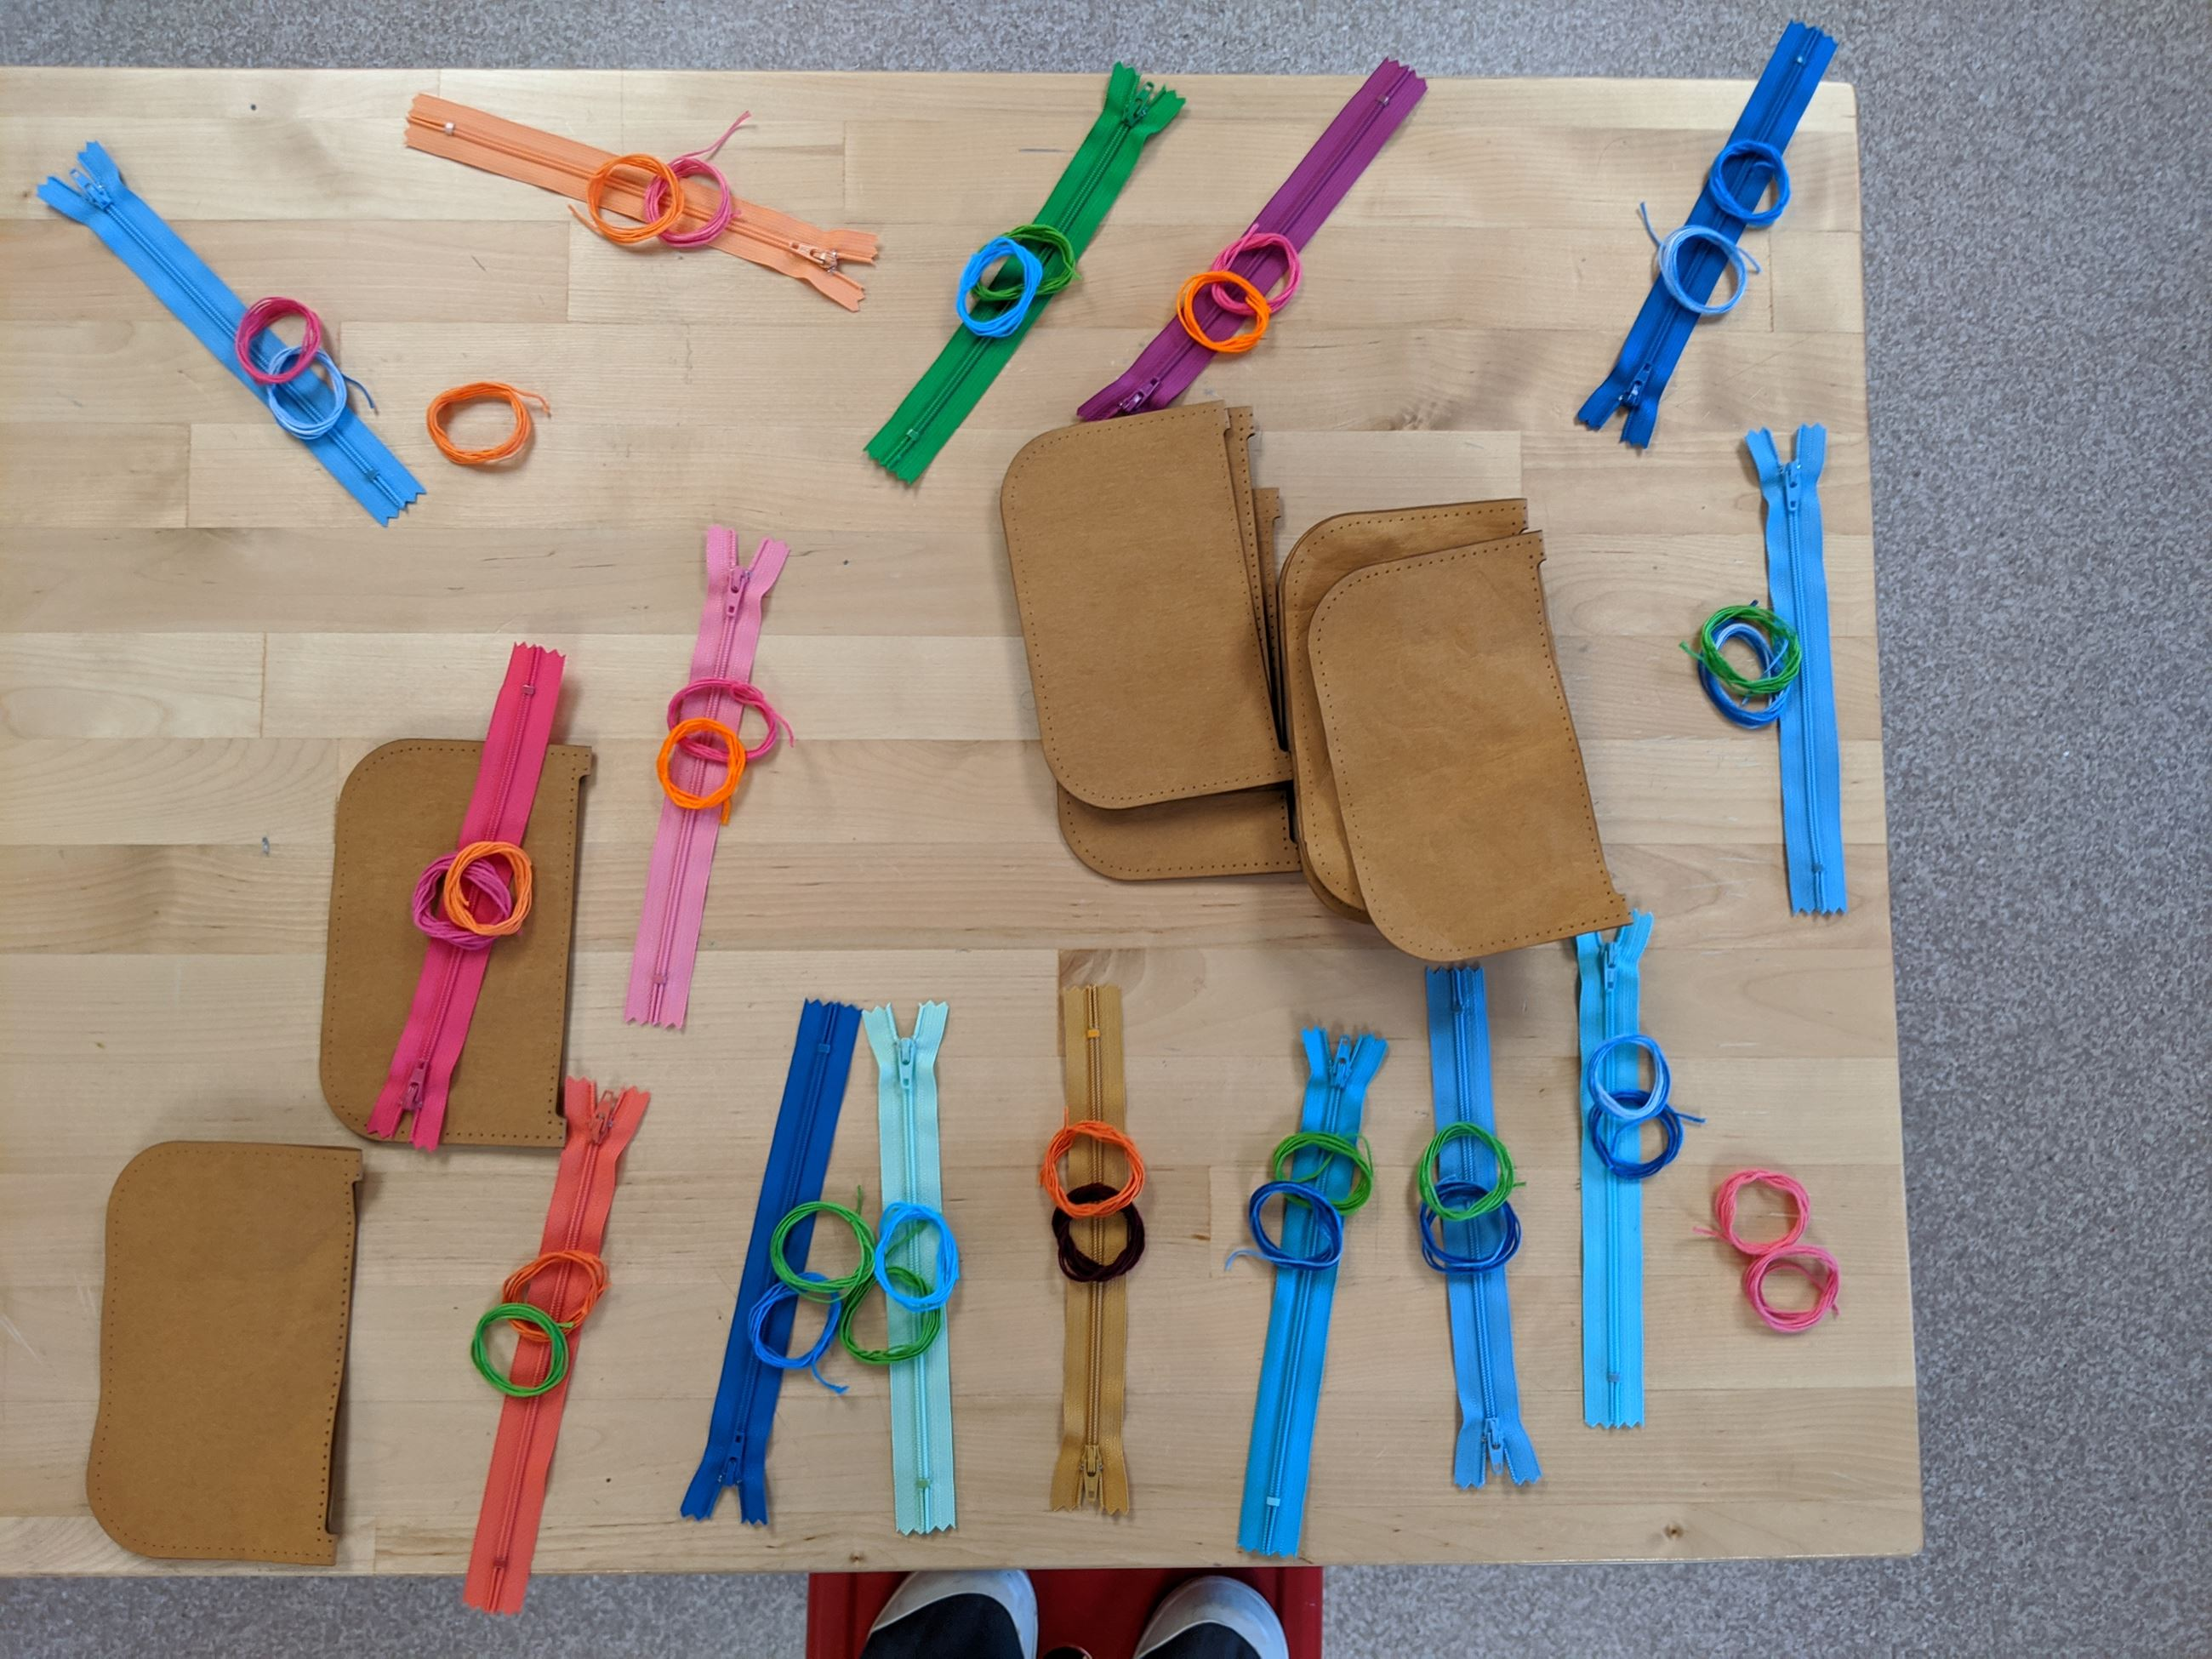 Take-and-make kits available at the Children's Desk